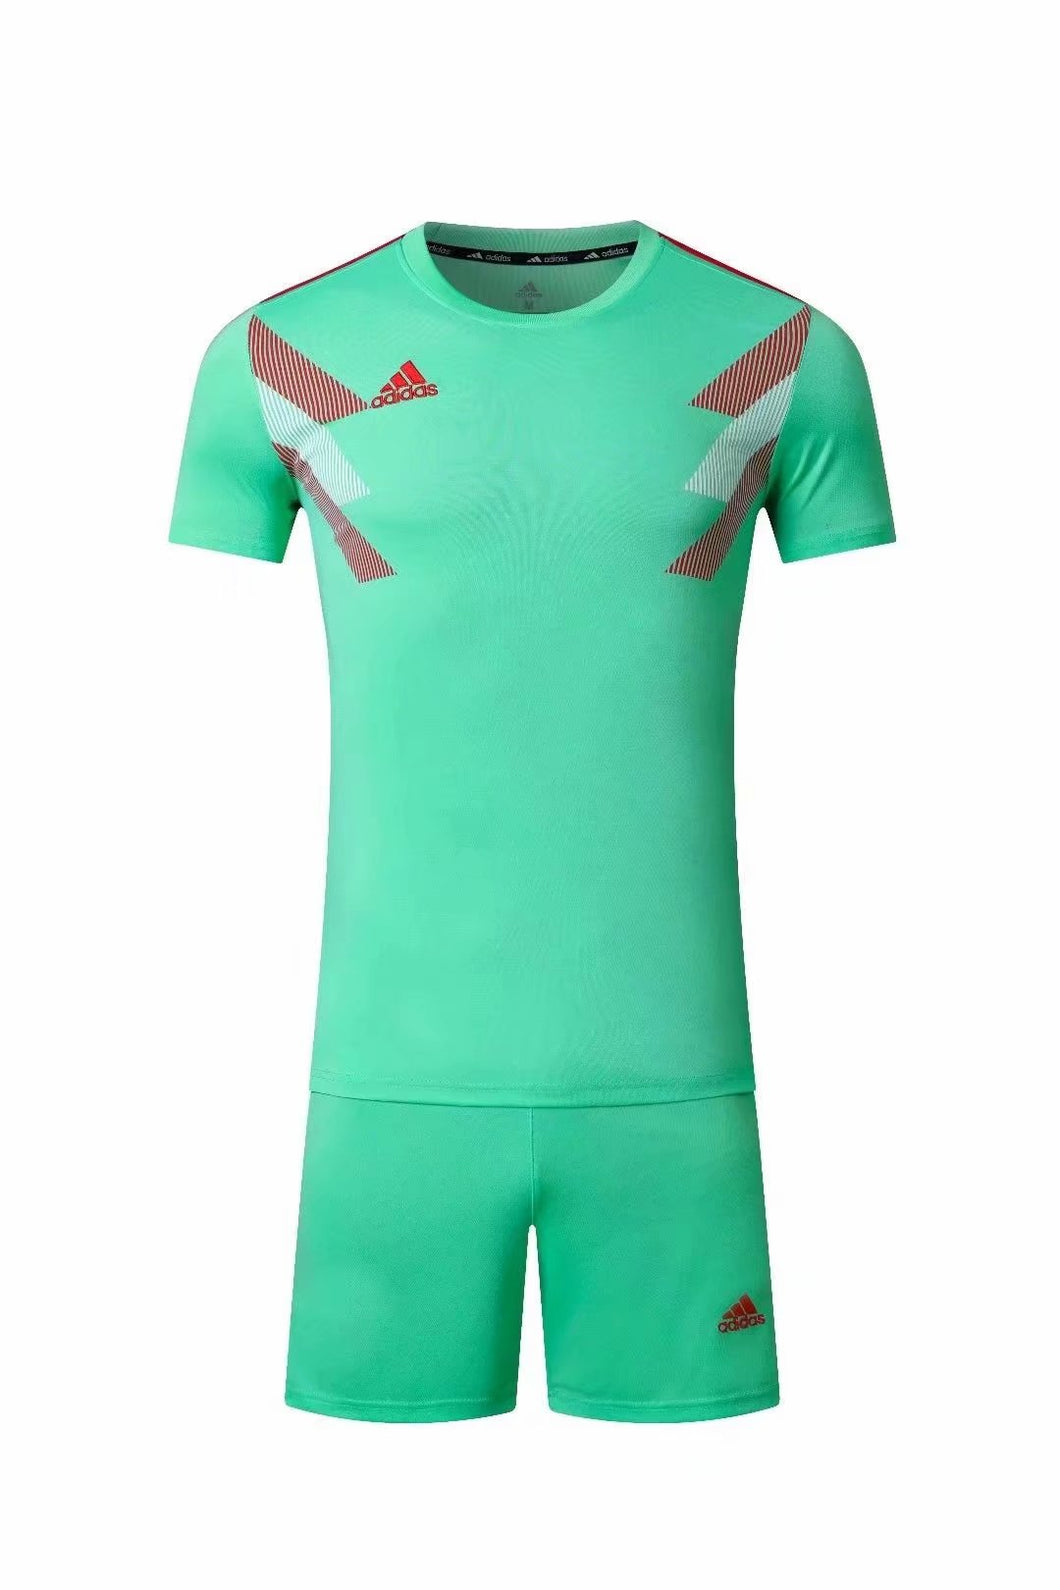 Adidas Full Football Kit Adult Sizes only - Turquoise with Red and White Chest Graphic.